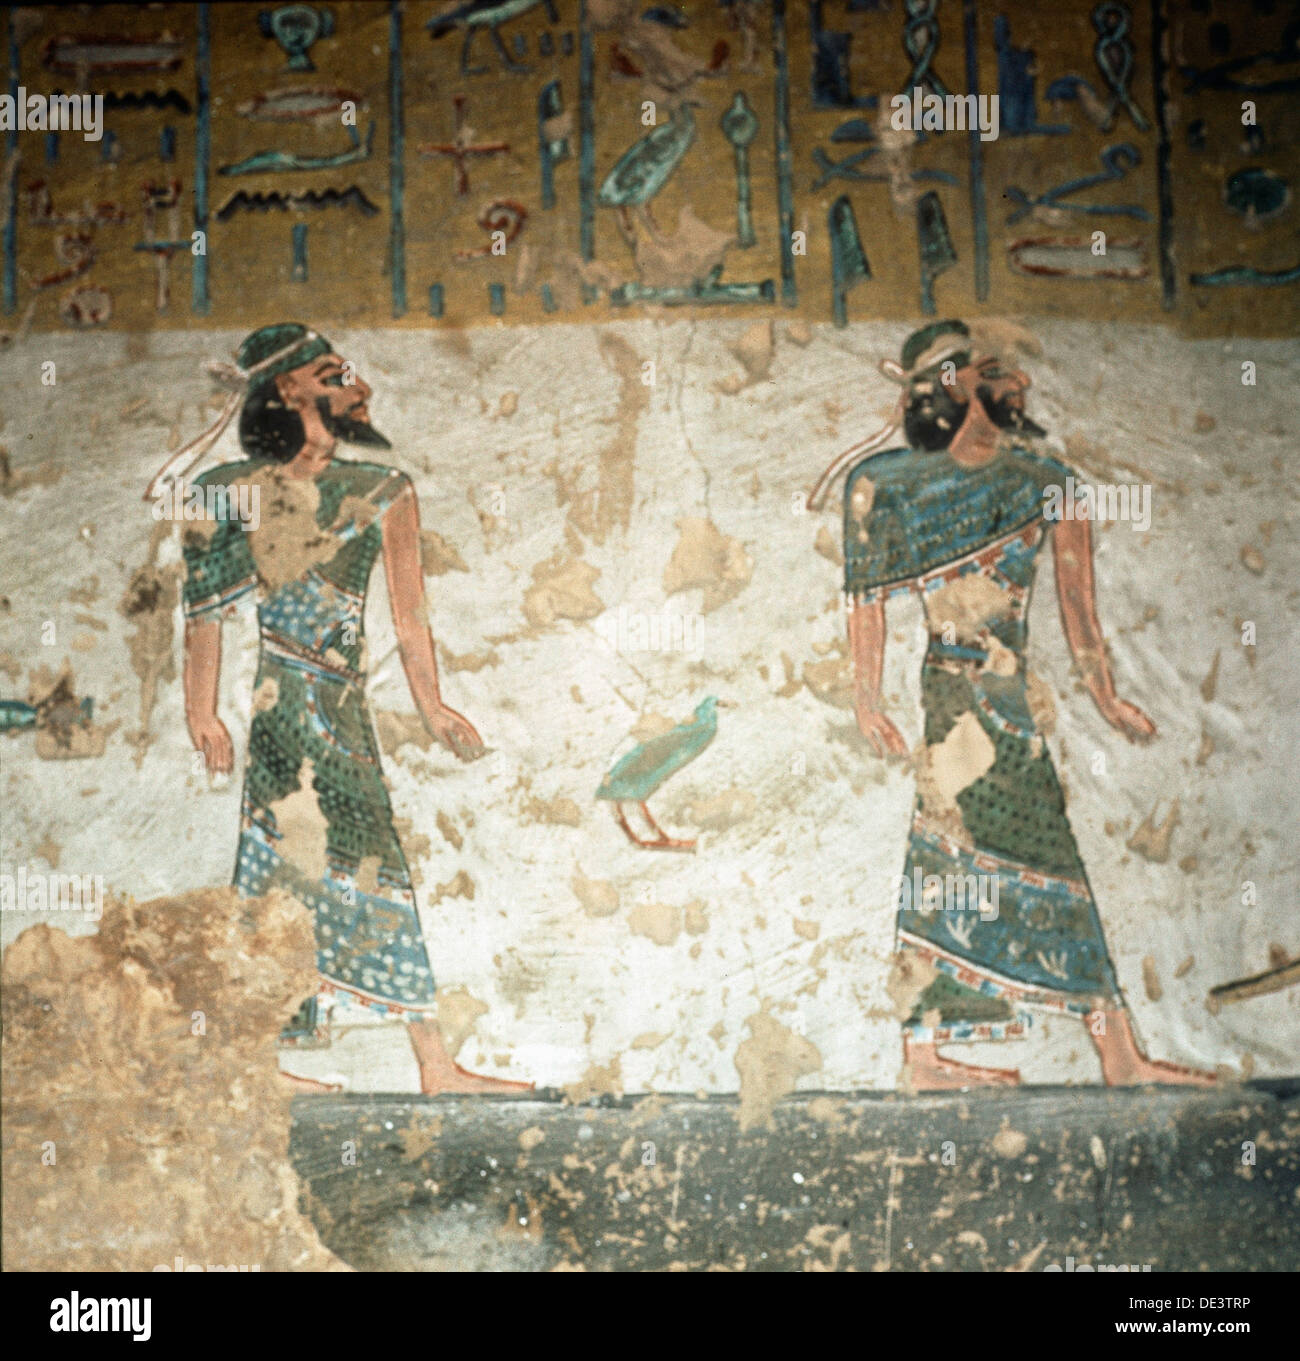 A detail of a wall in the tomb of Ramses III painted with scenes from the Book of Gates. Stock Photo